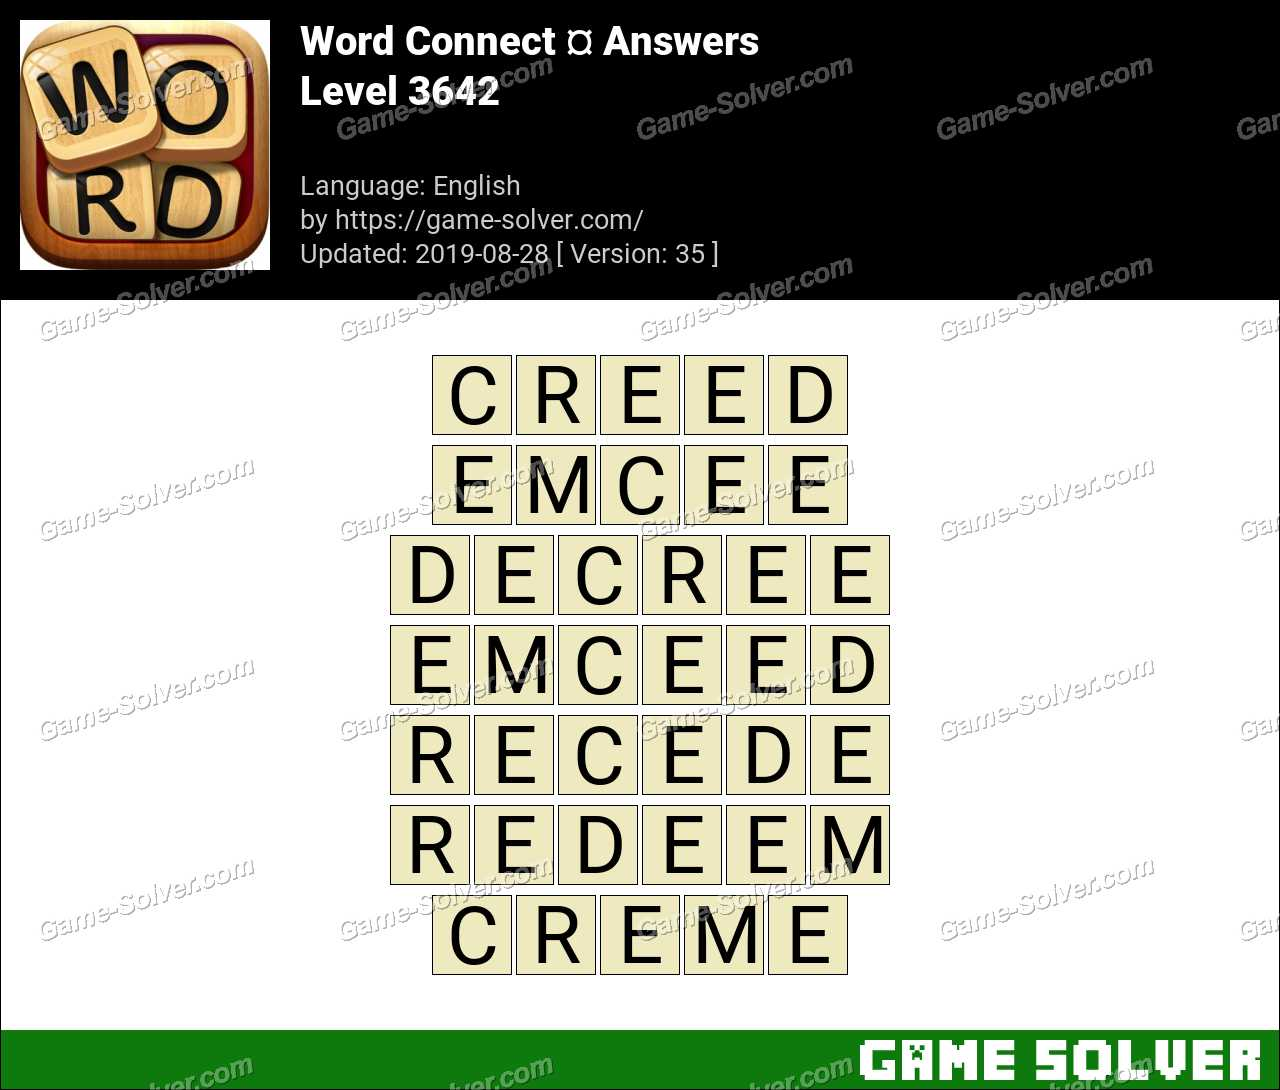 Word Connect Level 3642 Answers